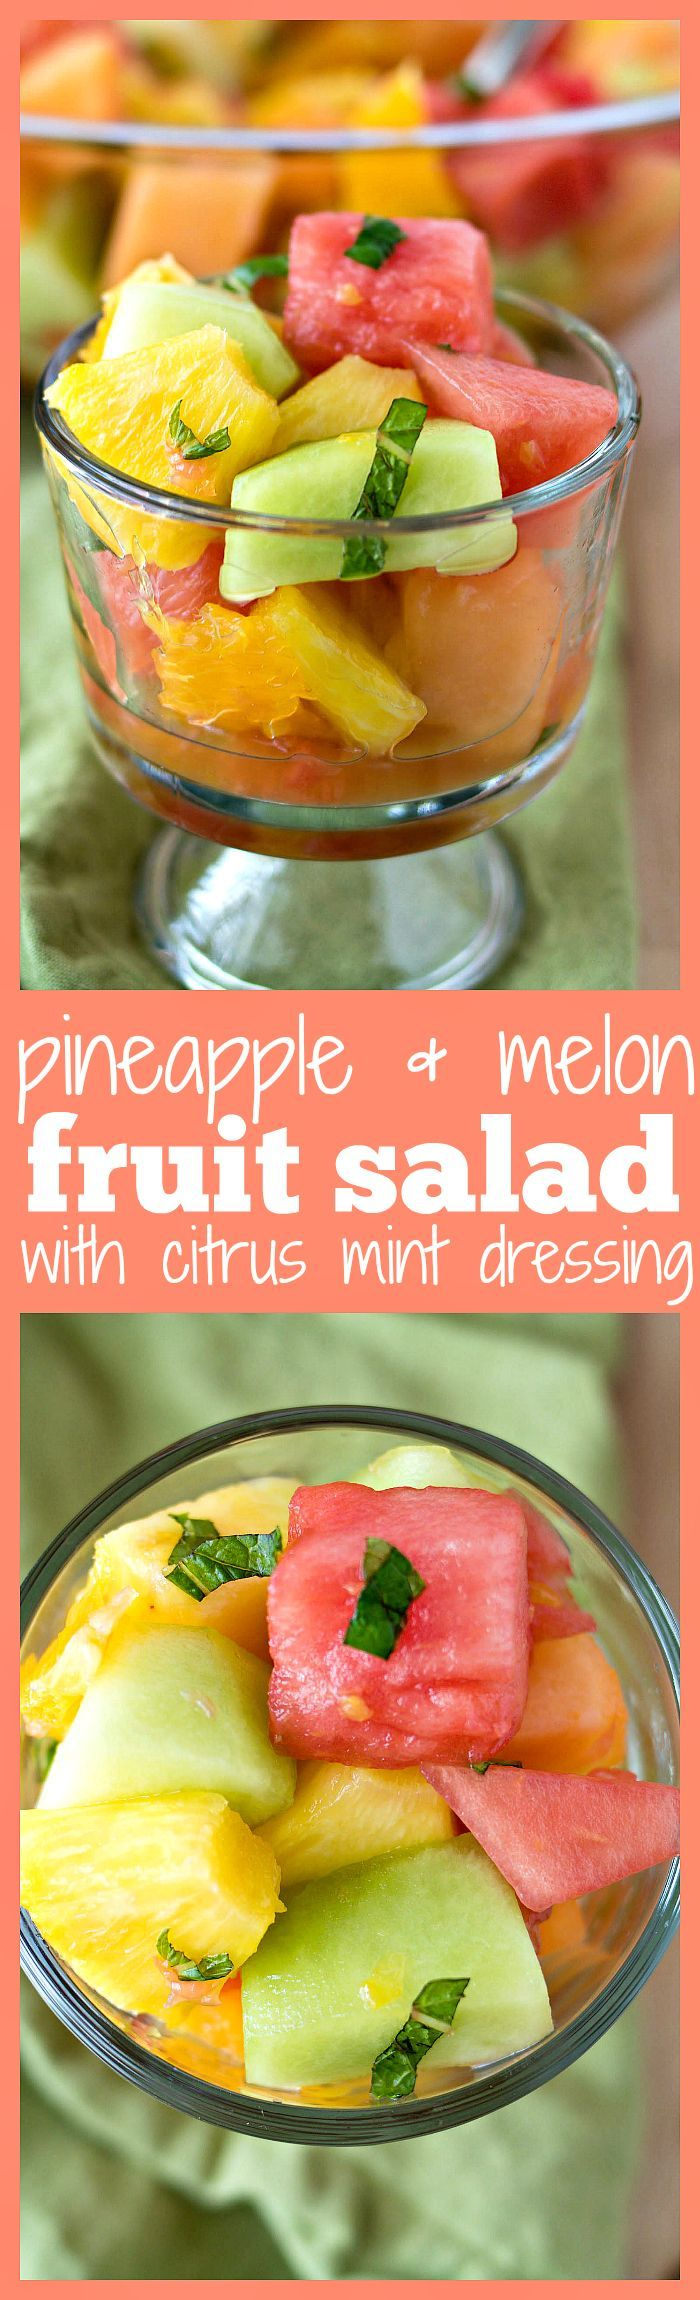 Pineapple & Melon Fruit Salad with Citrus Mint Dressing - A super refreshing fruit salad made with watermelon, cantaloupe, honeydew, pineapple, orange segments, grapefruit segments, chopped mint, and a hint of honey. The perfect addition to any summer party, picnic, or BBQ!